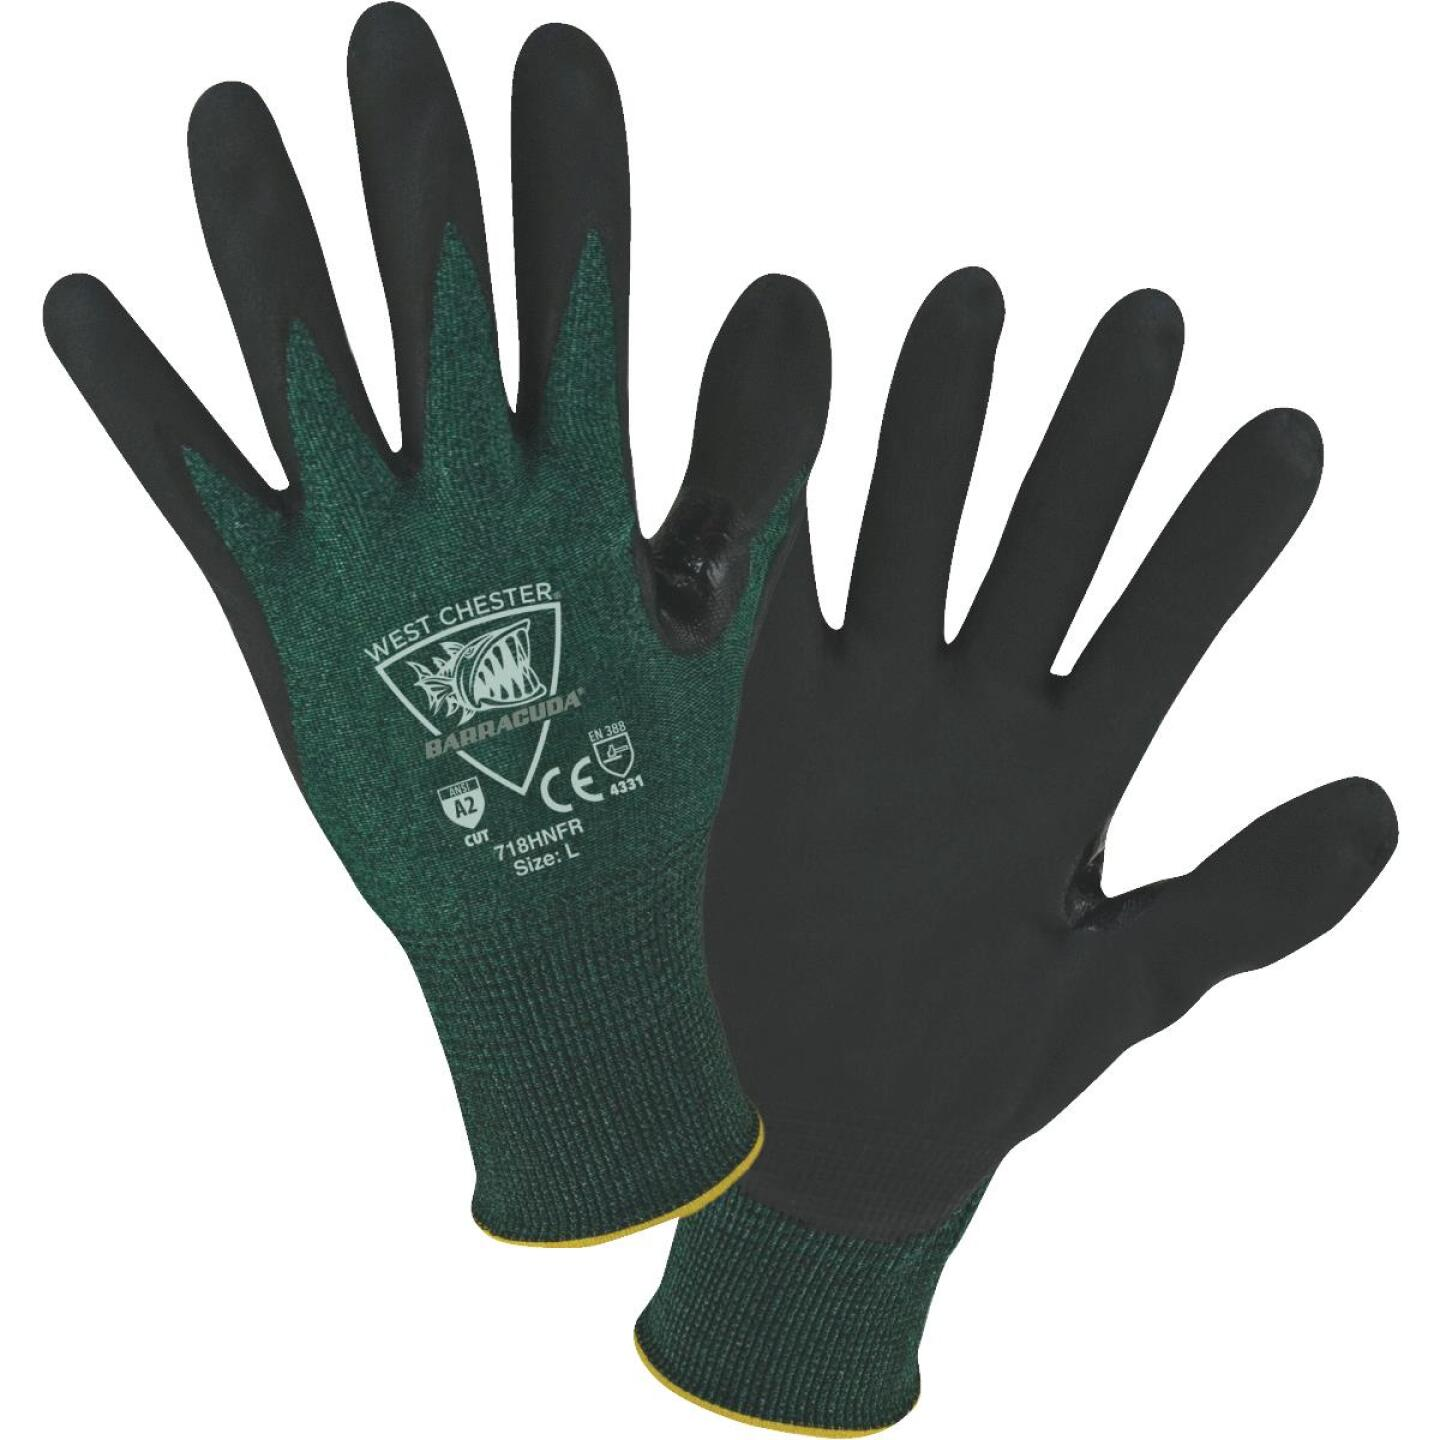 West Chester Protective Gear Barracuda Men's Large 18-Gauge Nitrile Coated Glove Image 1